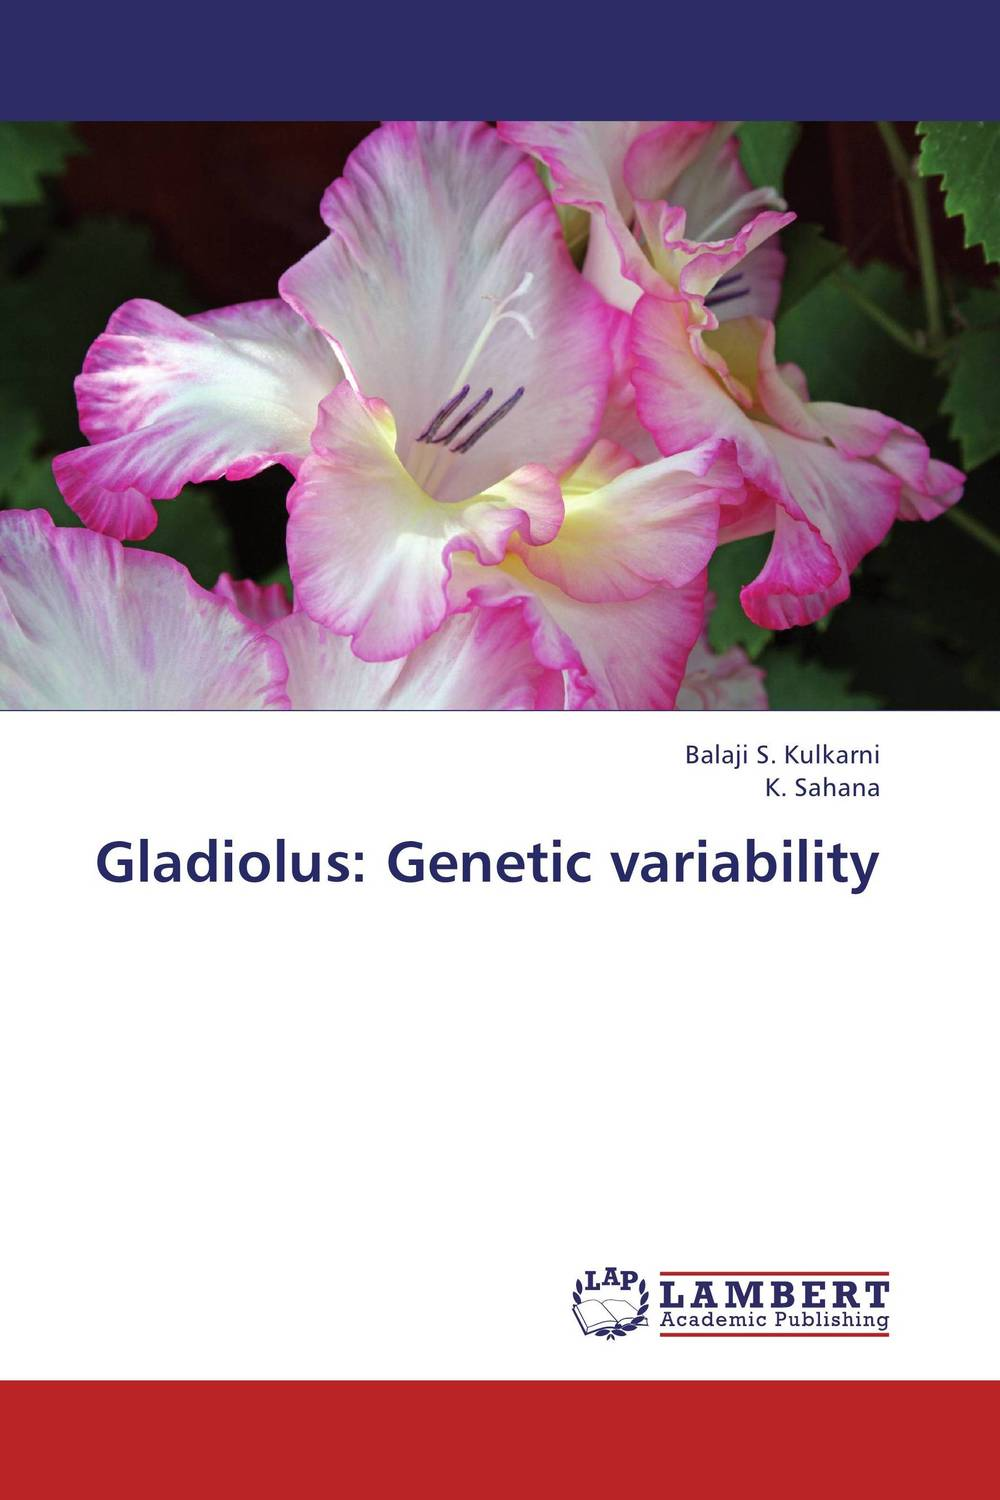 Gladiolus: Genetic variability opportunities for and constraints on crop production